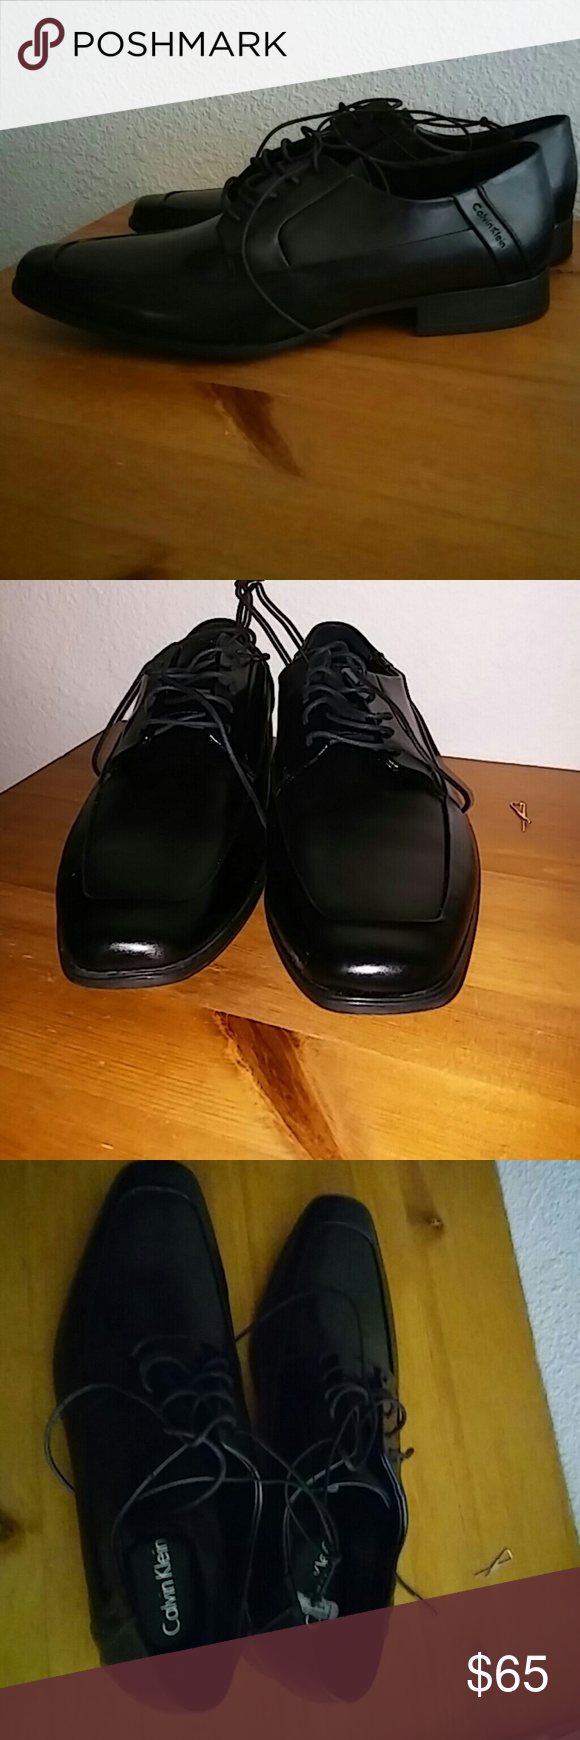 Calvin Klein Dress Shoes for men Bought them but didn't fit me well never used them. Calvin Klein Shoes Oxfords & Derbys